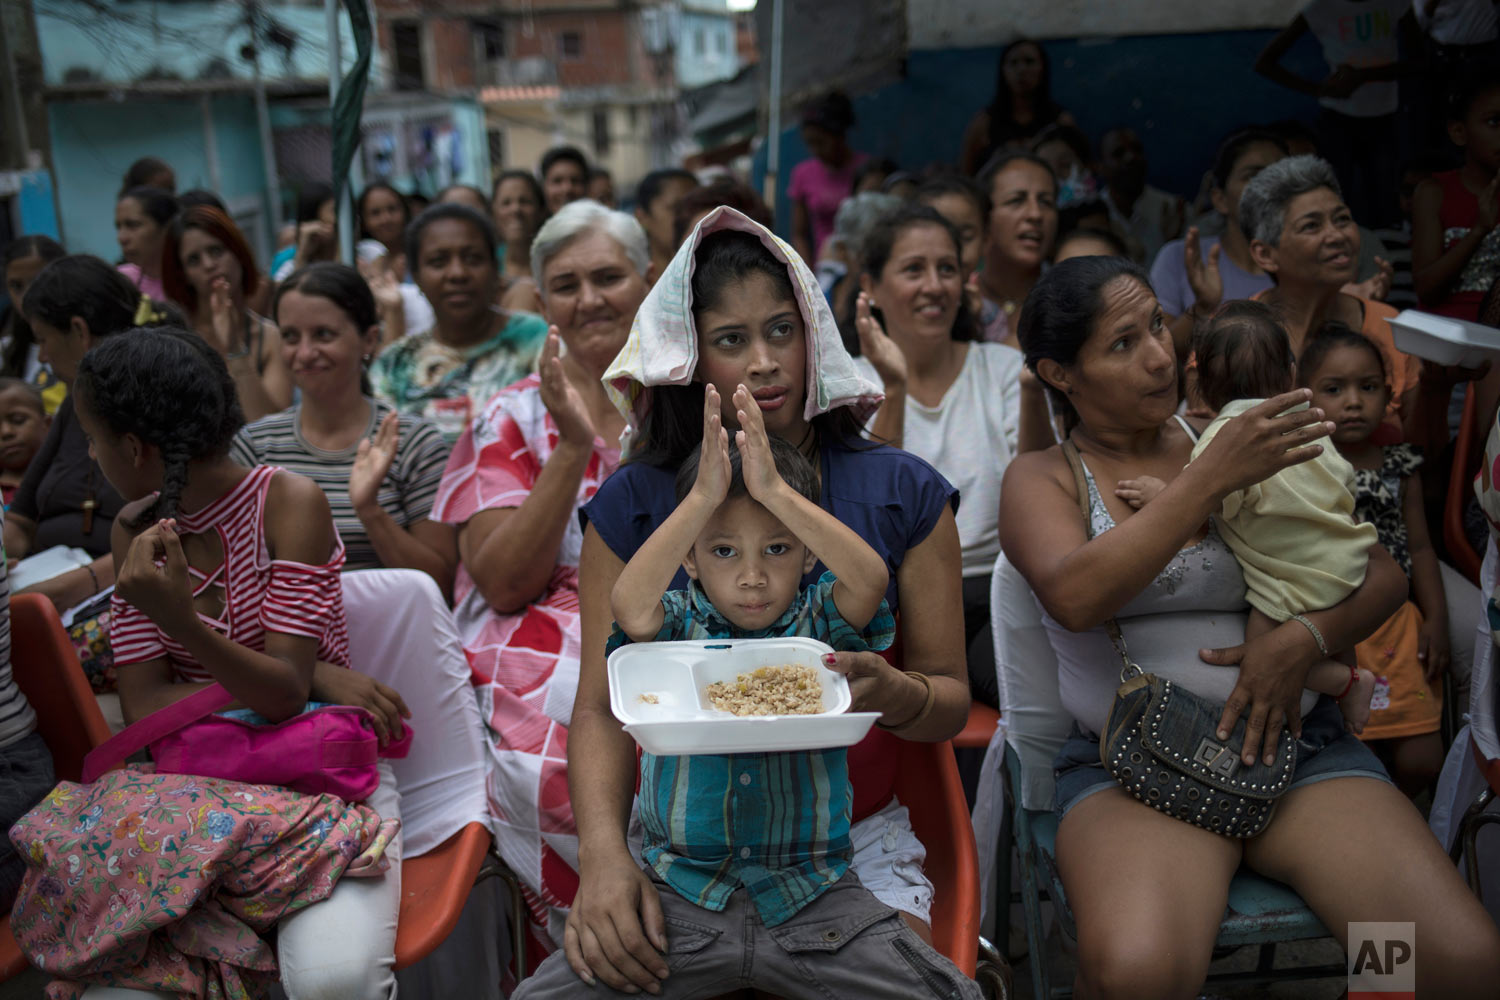 Women watch mariachis musicians perform during a Mother's Day block party in Caracas, Venezuela, late Sunday, May 19, 2019. (AP Photo/Rodrigo Abd)